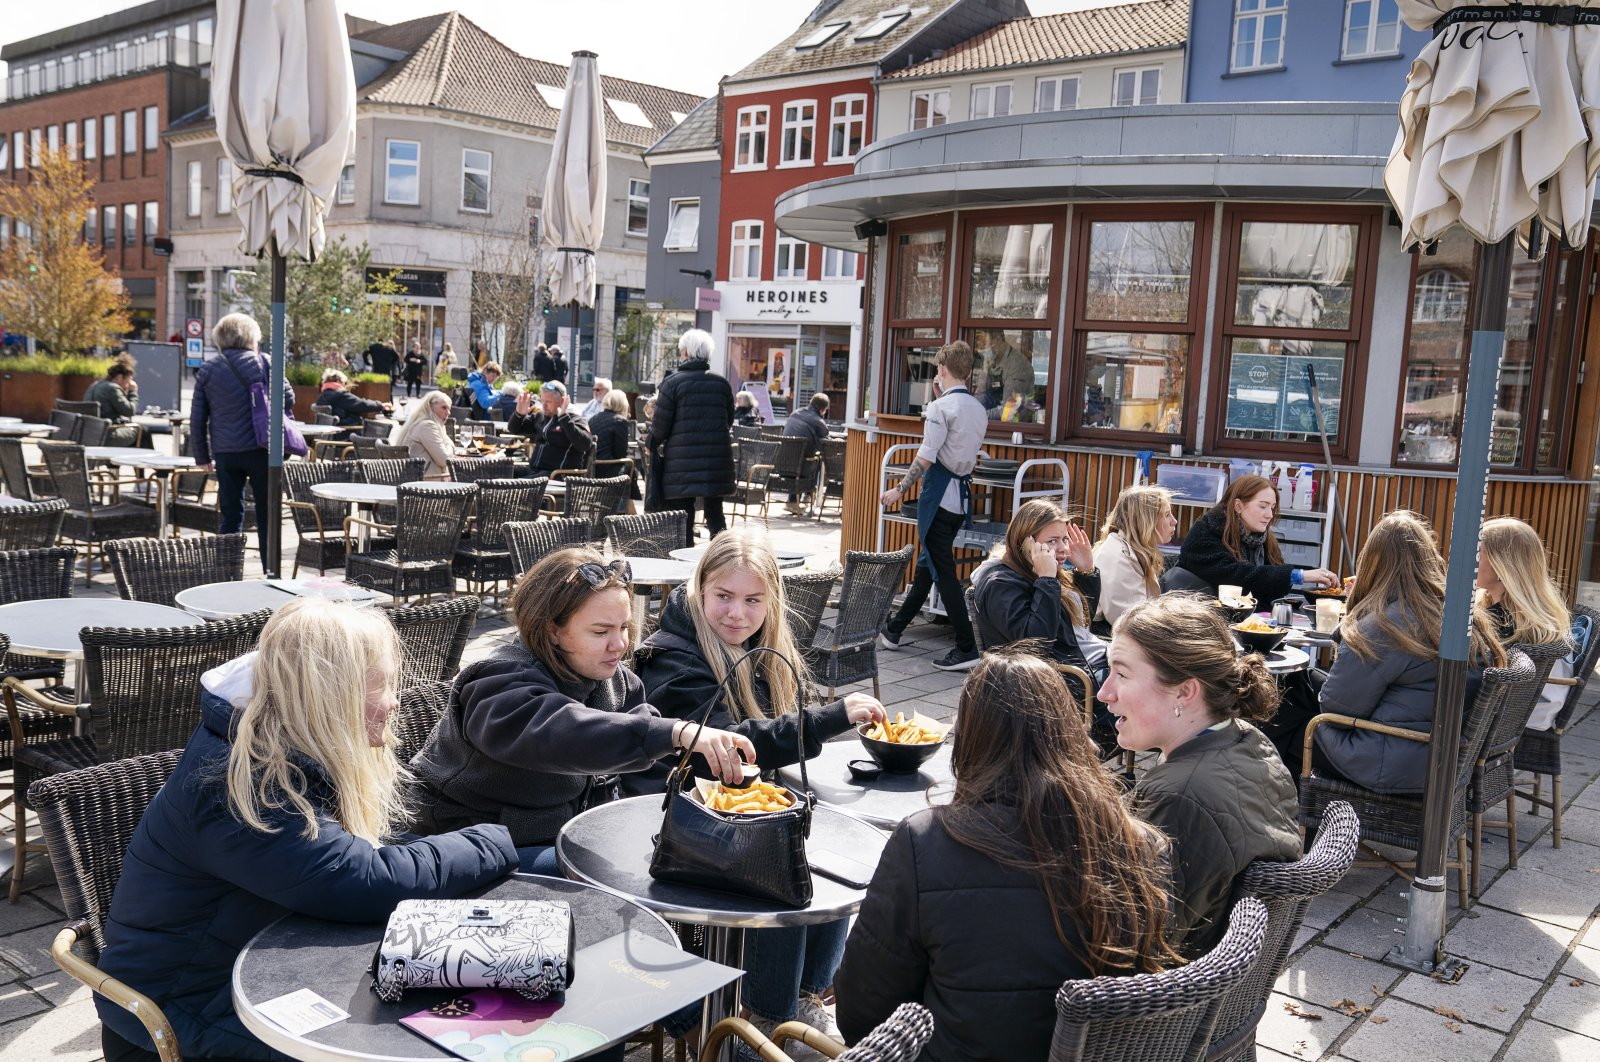 People sit outside a restaurant as cafes and bars are reopened, in Roskilde, Denmark, April 21, 2021. (AP Photo)